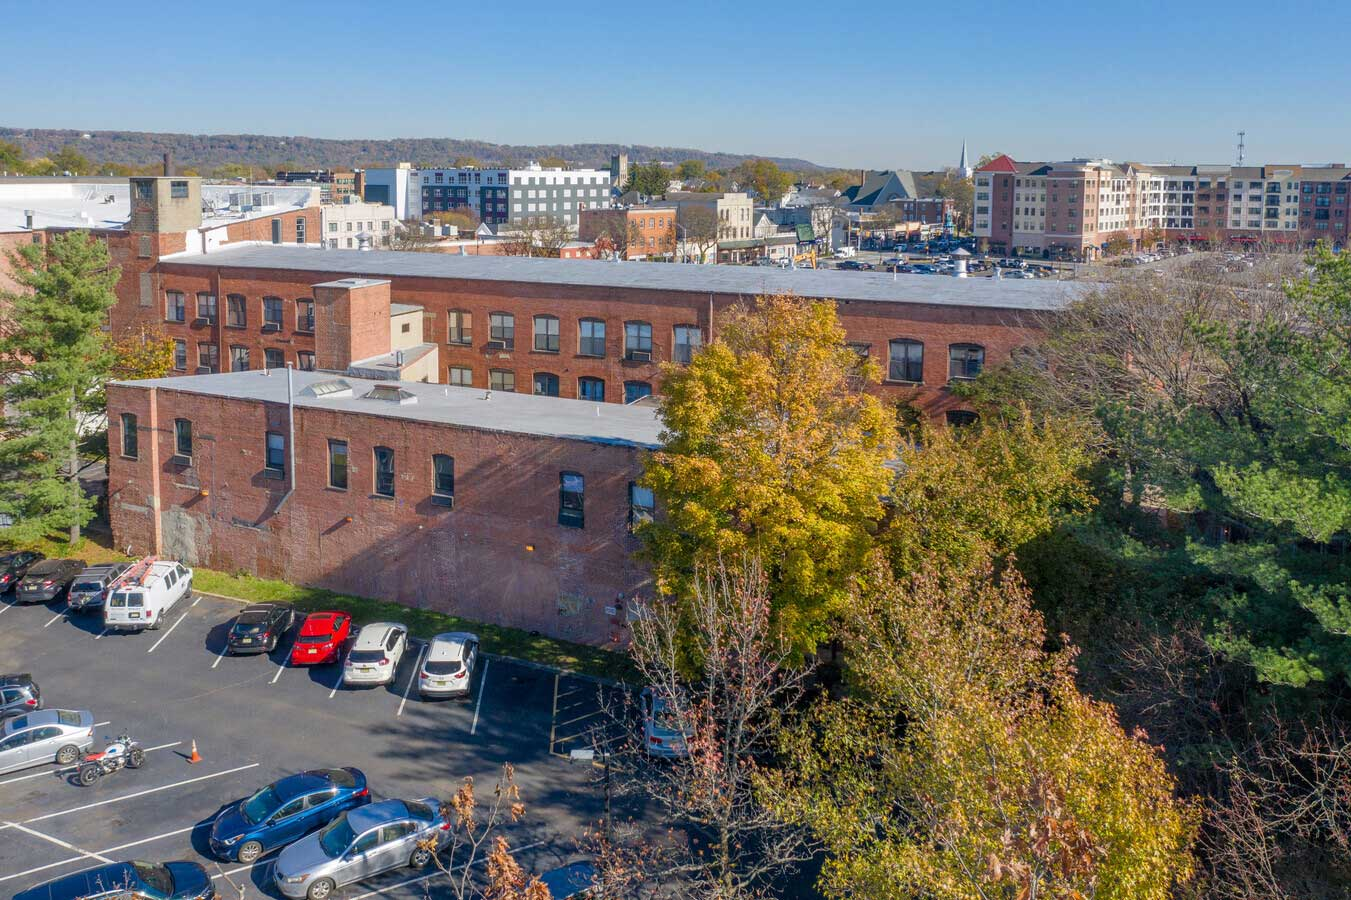 Aerial View at The Warehouse Apartments in Somerville, New Jersey